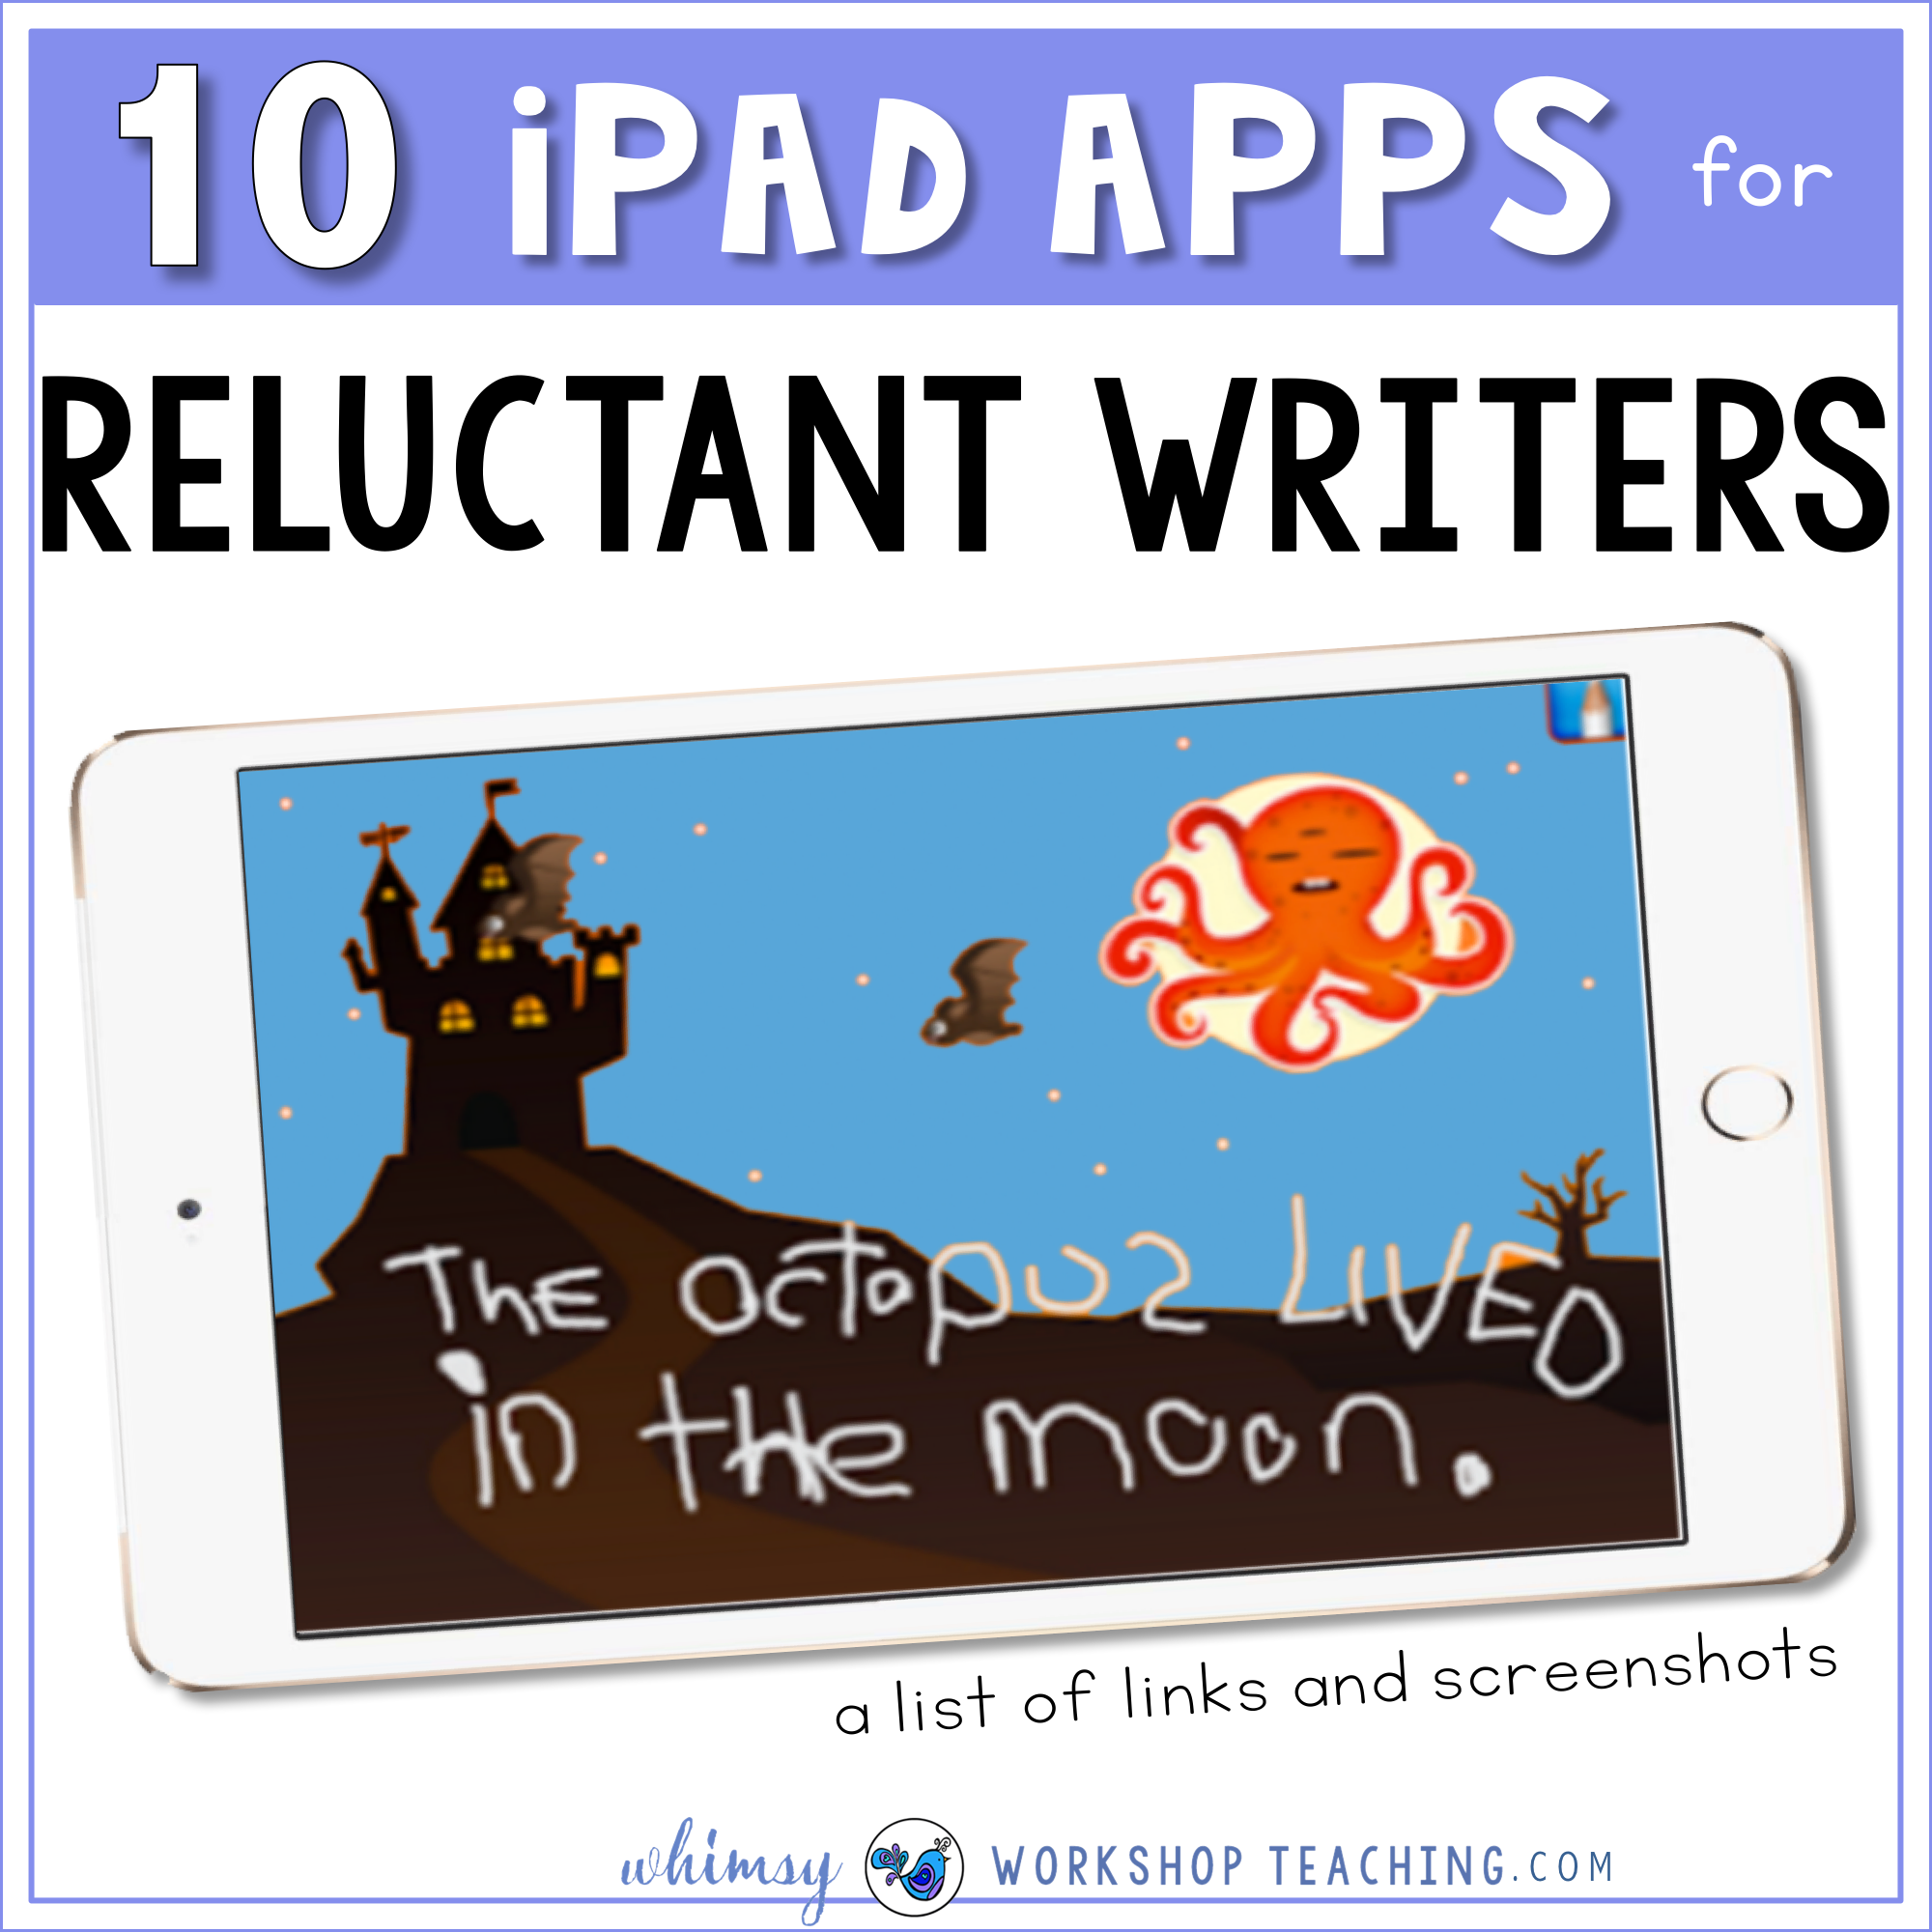 10 ipad apps for reluctant writers